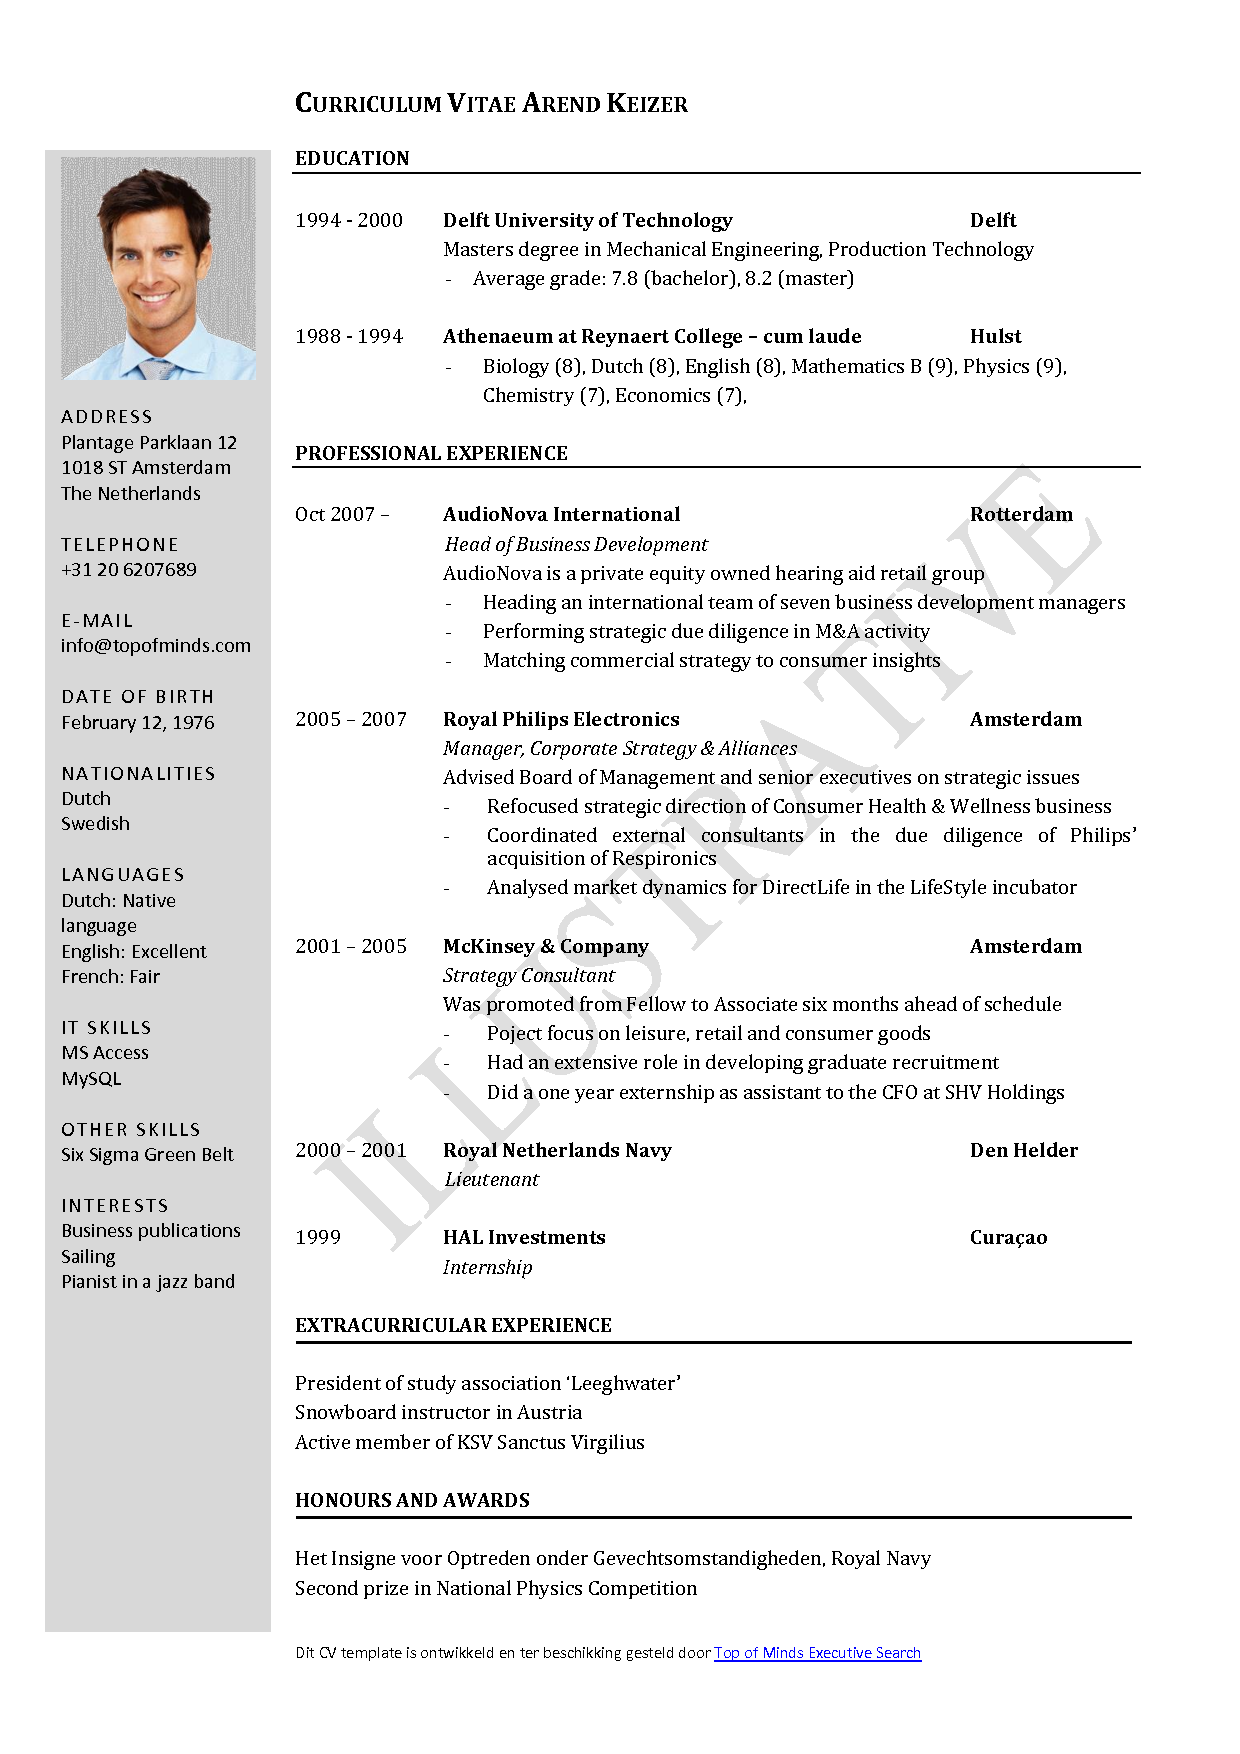 free curriculum vitae template word download cv template - Best Resume Template Download